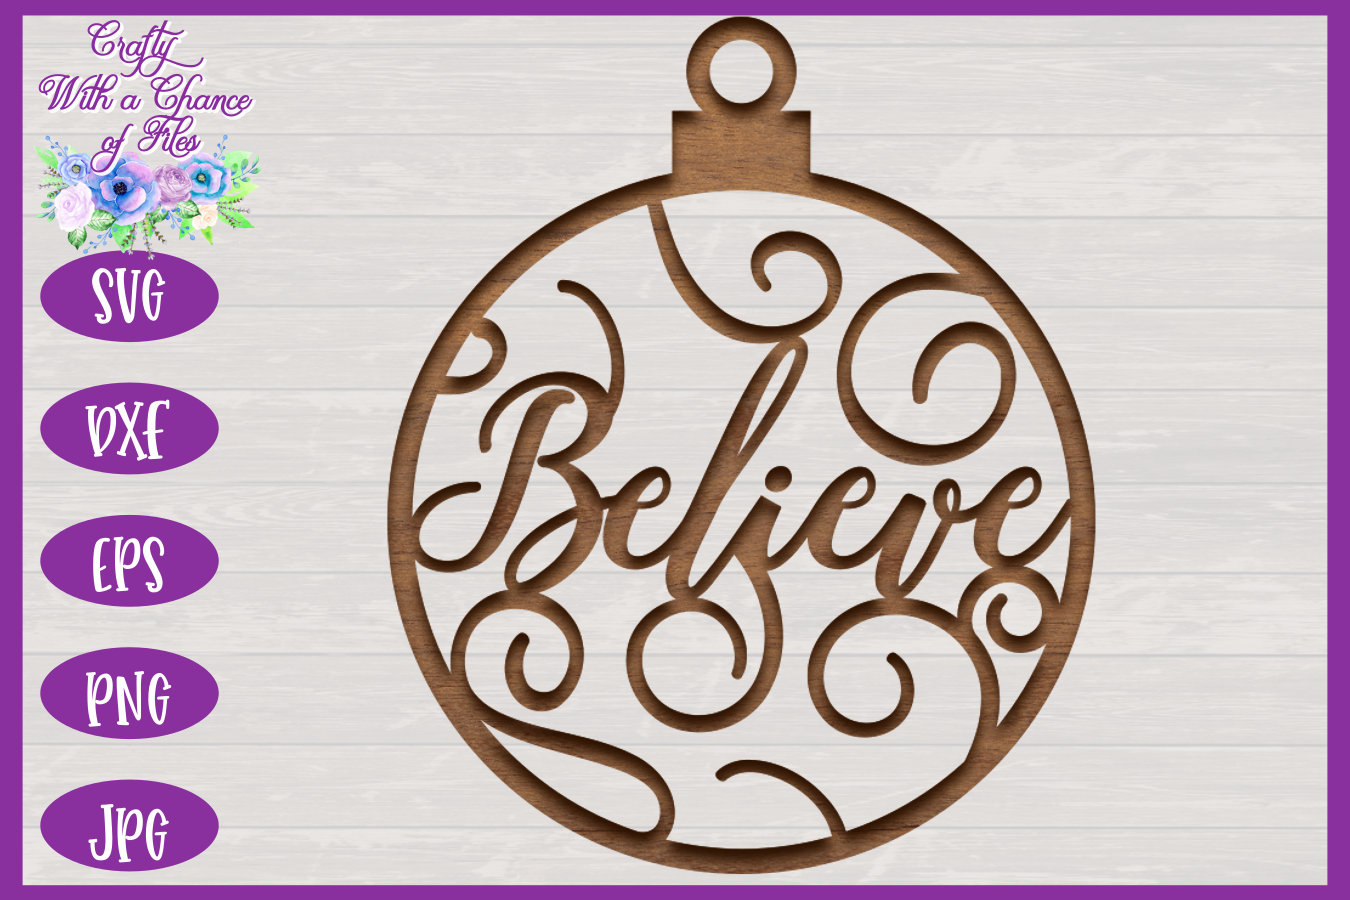 Christmas Word Ornaments SVG | Laser Cut Baubles SVG example image 4